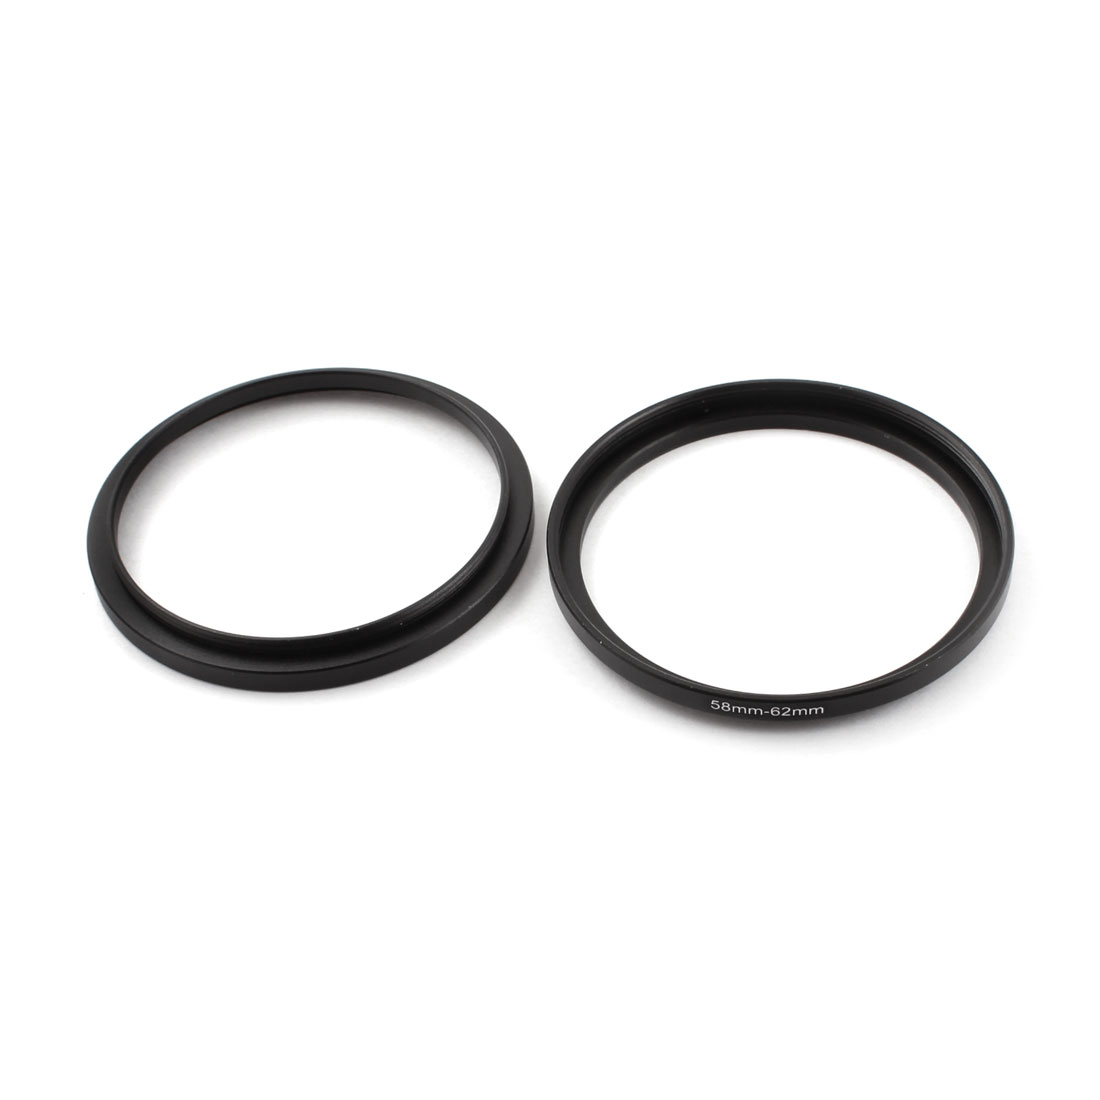 58mm-62mm 58mm to 62mm Aluminum Camera Step Up Lens Adapter Filter Ring 2 Pcs